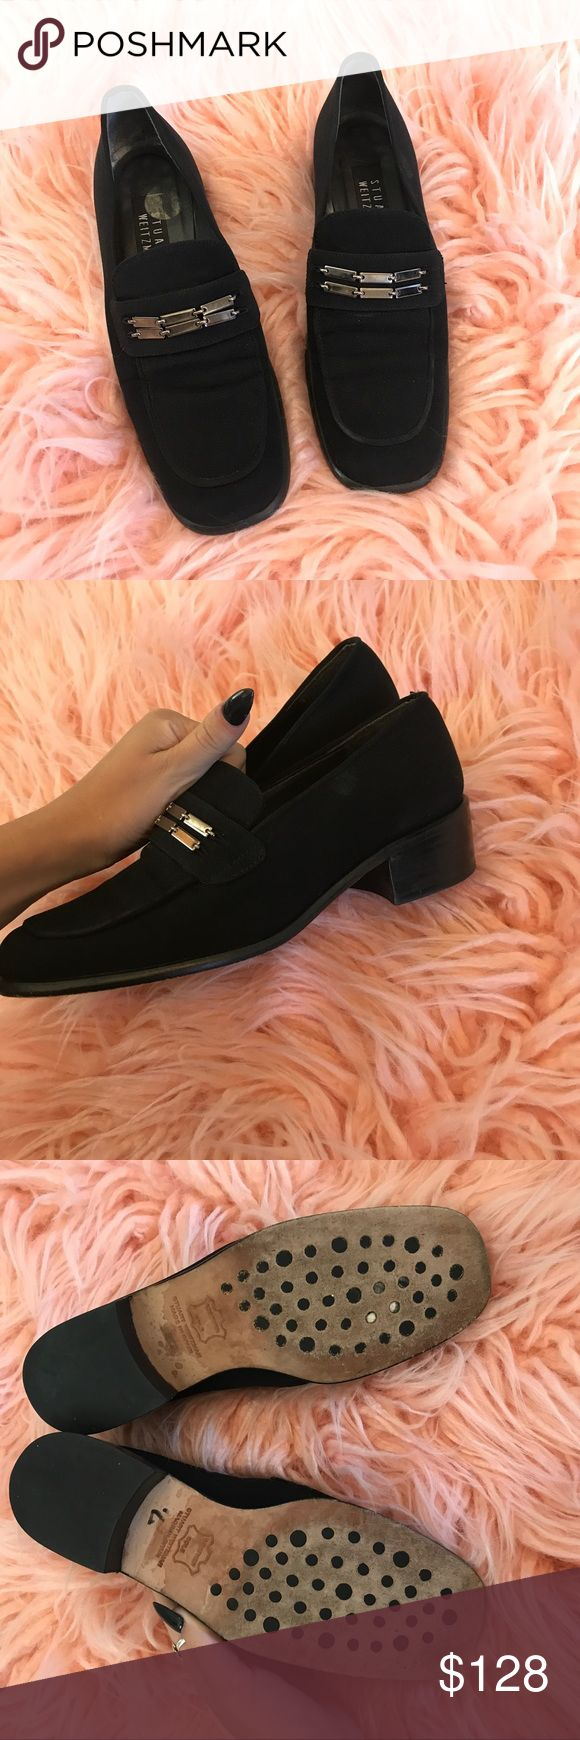 Stuart weitzman heeled loafers ⚡️NO trades  ⚡️open to ALL offers!  ⚡️ bundle for MAJOR discounts!  ⚡️feel free to ask any questions ⚡️ I will not respond to offers in the comments, please use the offer button for all offers.  ⚡️Please only ask for model photos if you are very interested!  ⚡️All sales are final and all offers are binding.  ⚡️ If I miss your comment, please comment again! Stuart Weitzman Shoes Flats & Loafers